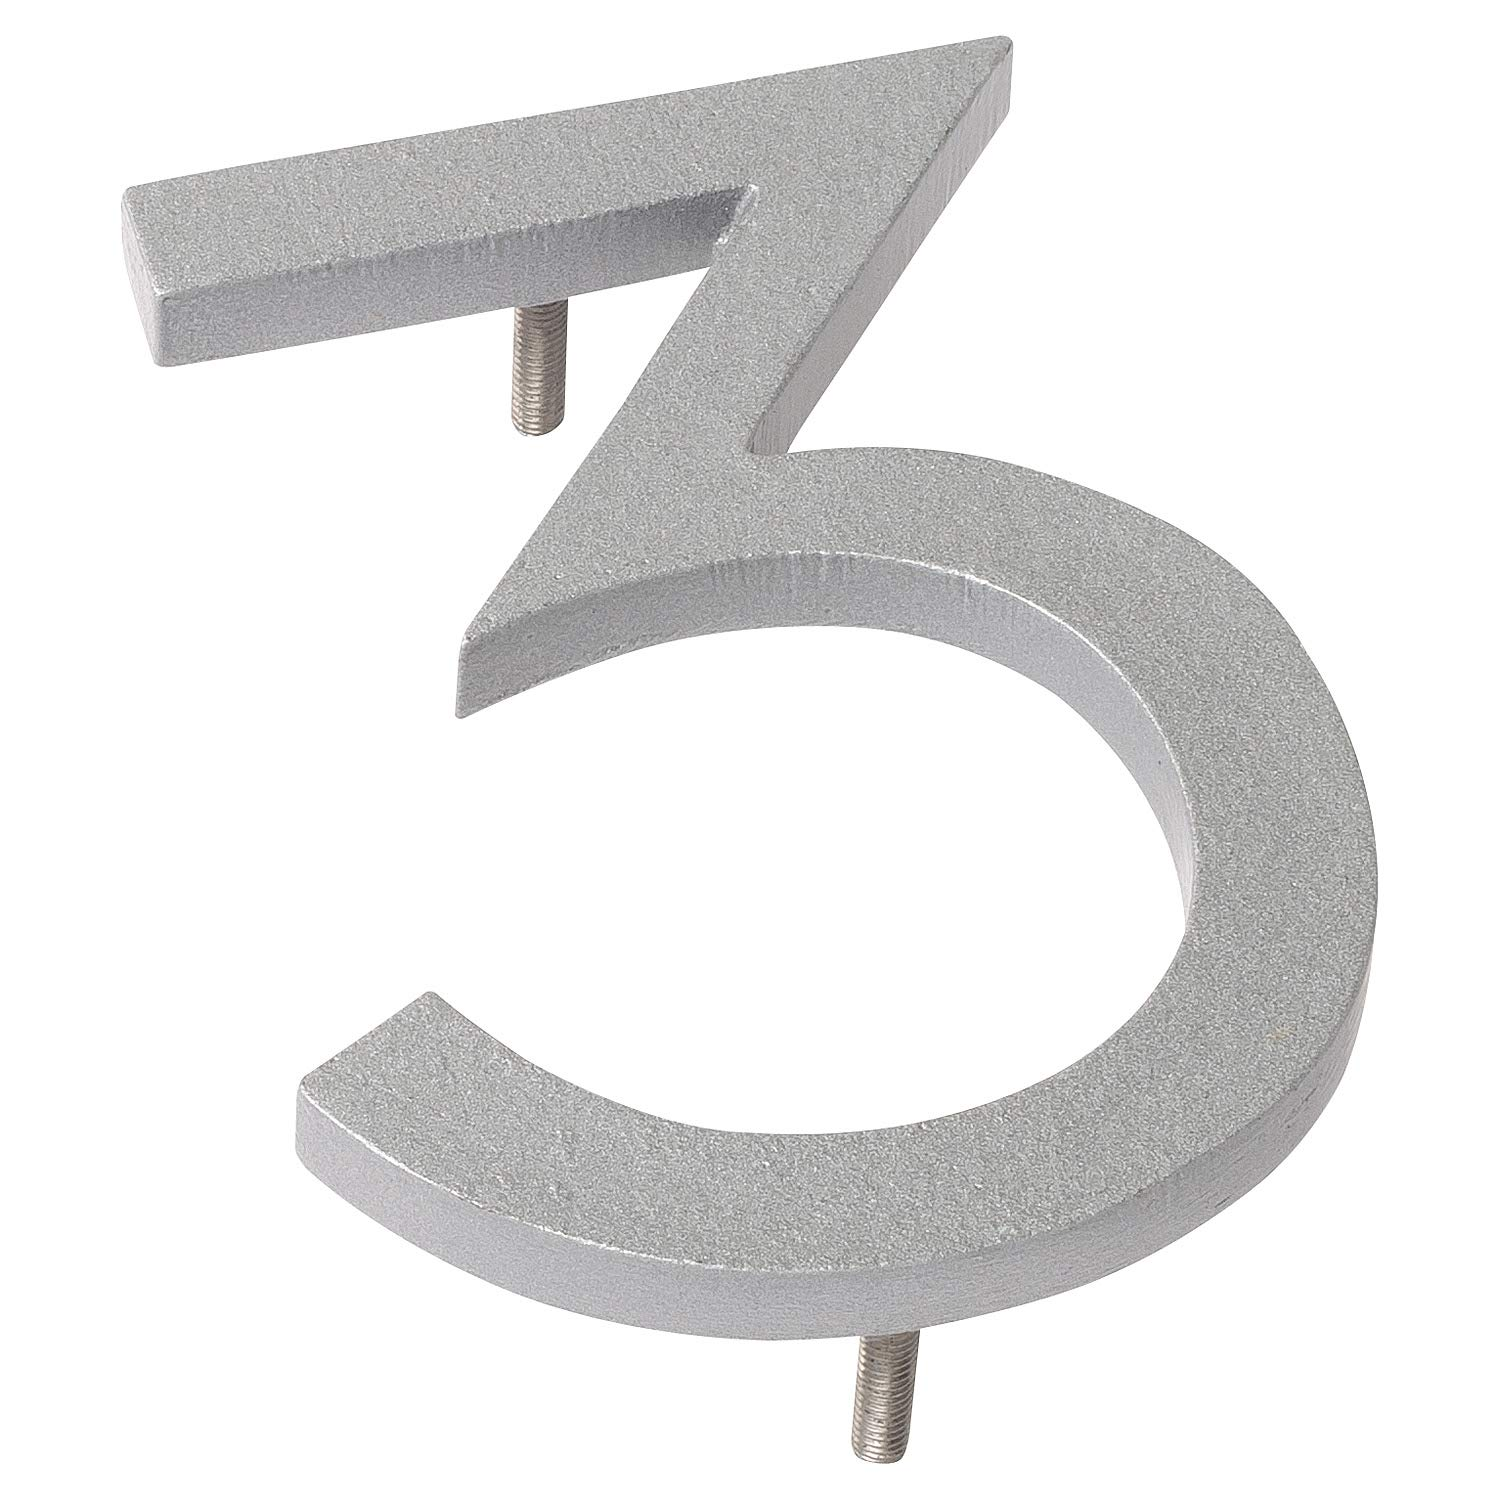 Montague Metal Products MHN-08-3-F-SR1 Floating House Number, 8'' x 6'' x 0.375'', Silver